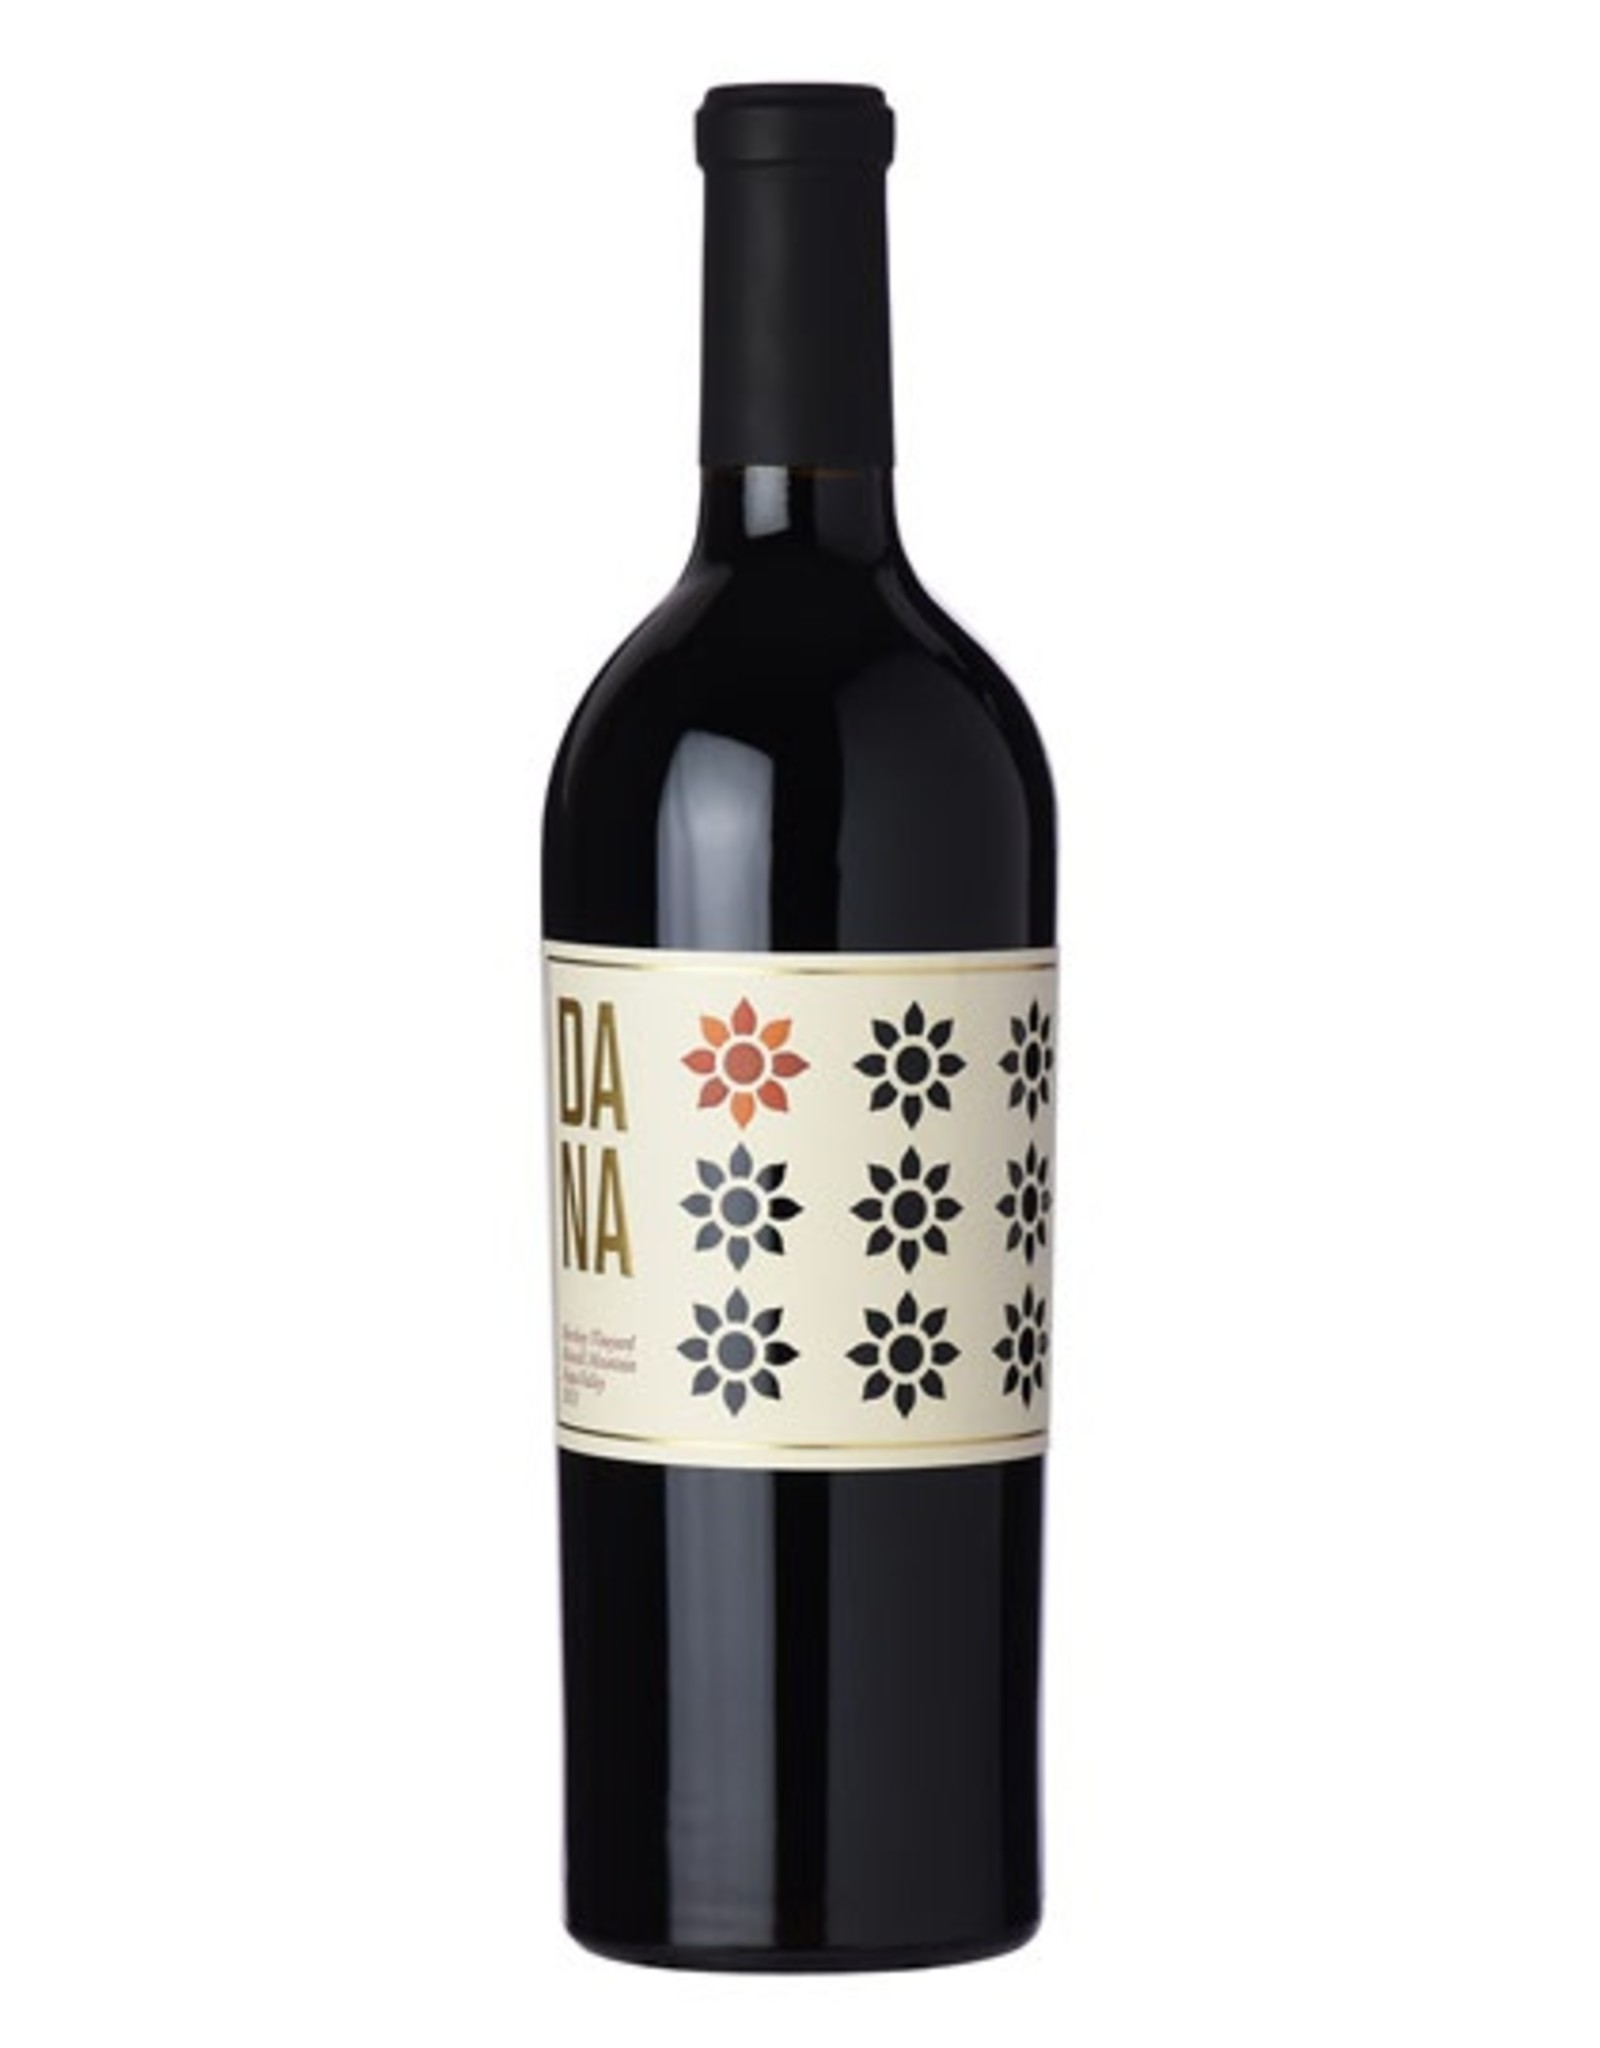 Red Wine 2013, Dana Hershey Vineyard, Cabernet Sauvignon, Howell Mountain, Napa Valley, California, 15.2% Alc, CT99, RP99